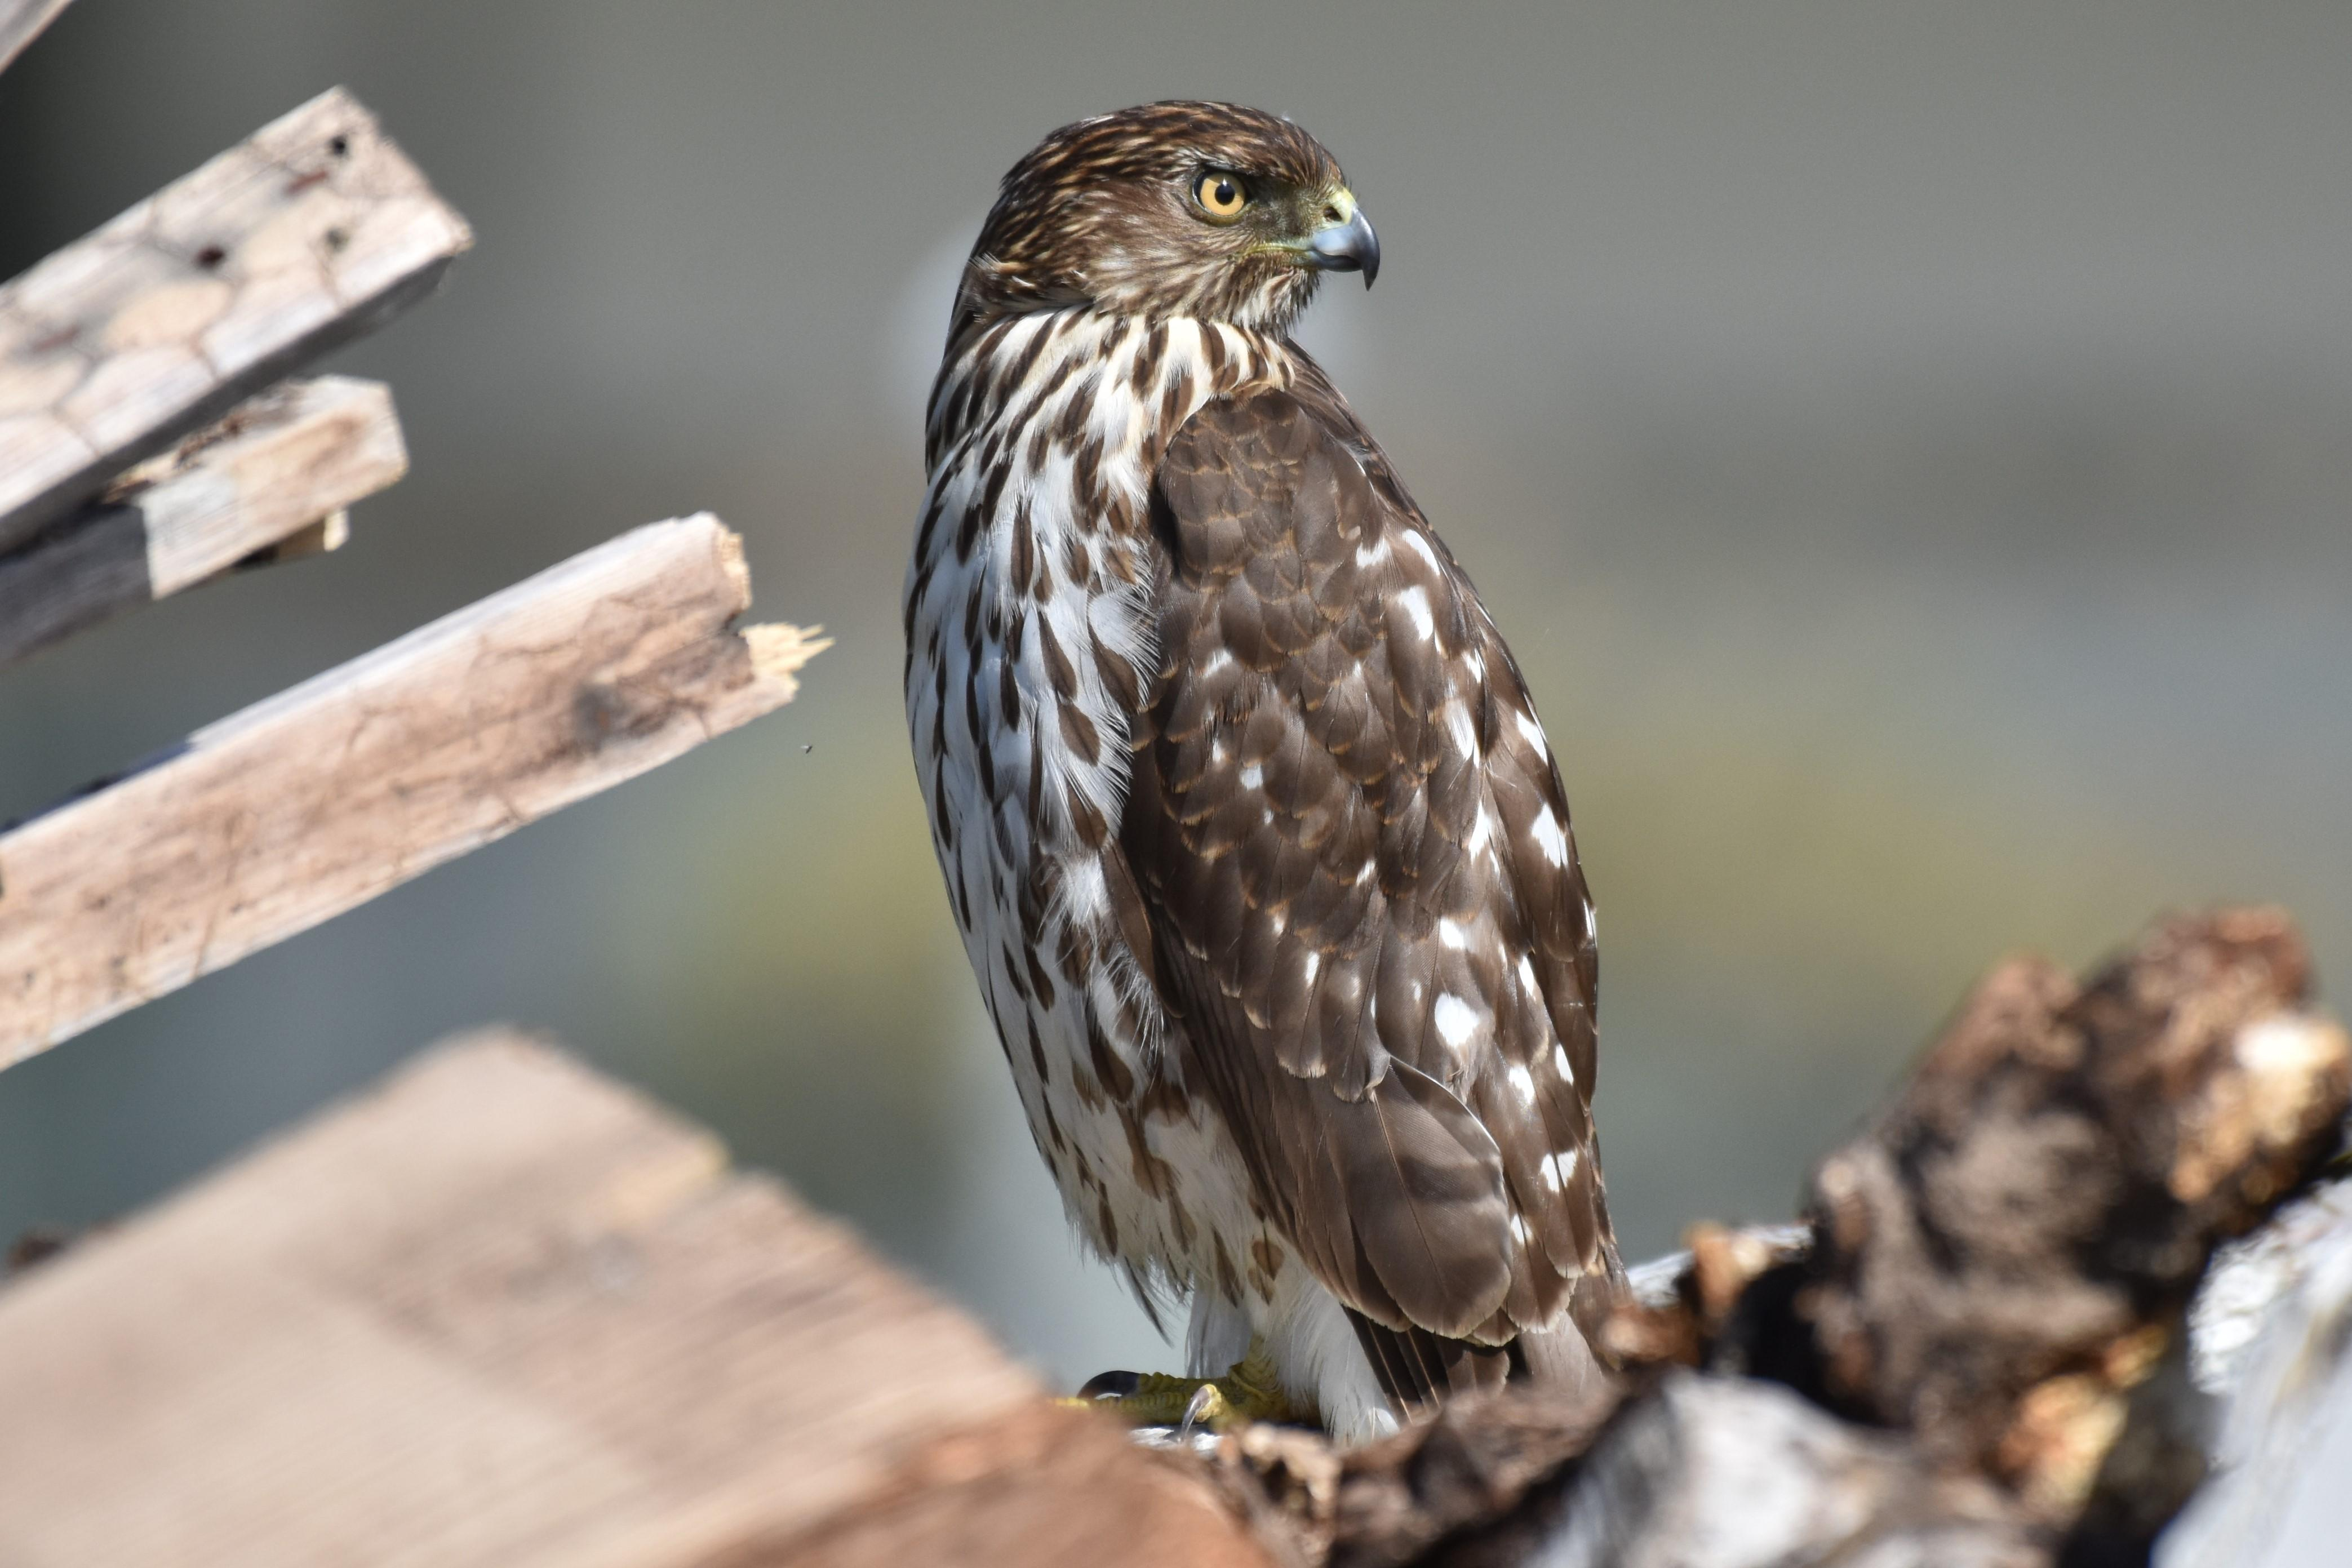 Cooper's Hawk. Sitting in our back yard Parksville BC - reddogger56 - bit.ly2IVK9O8